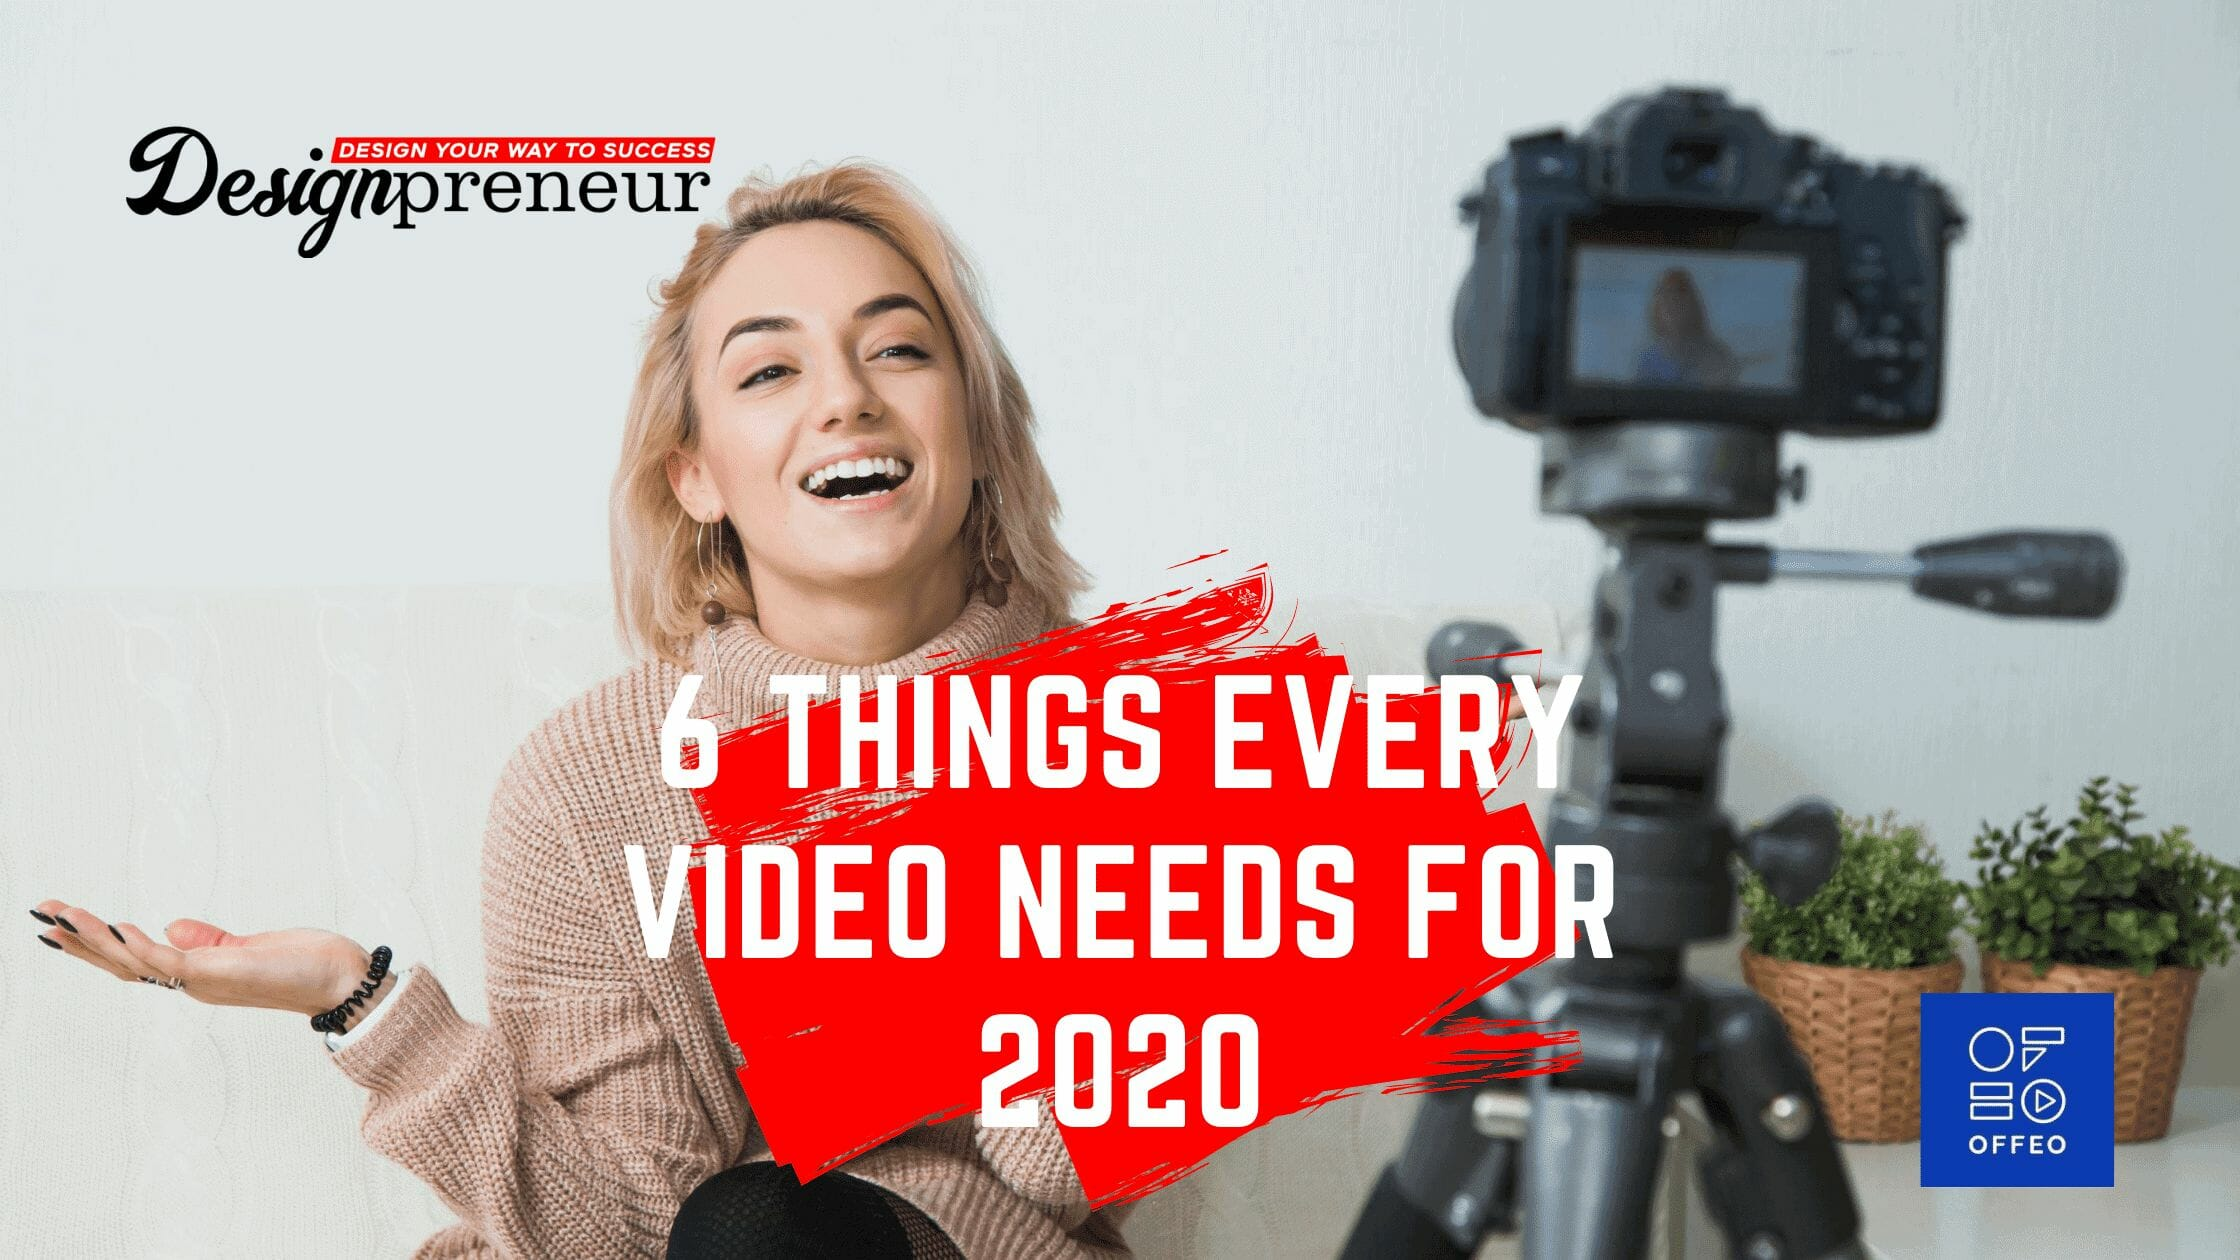 6 Things Every Video Needs For 2020